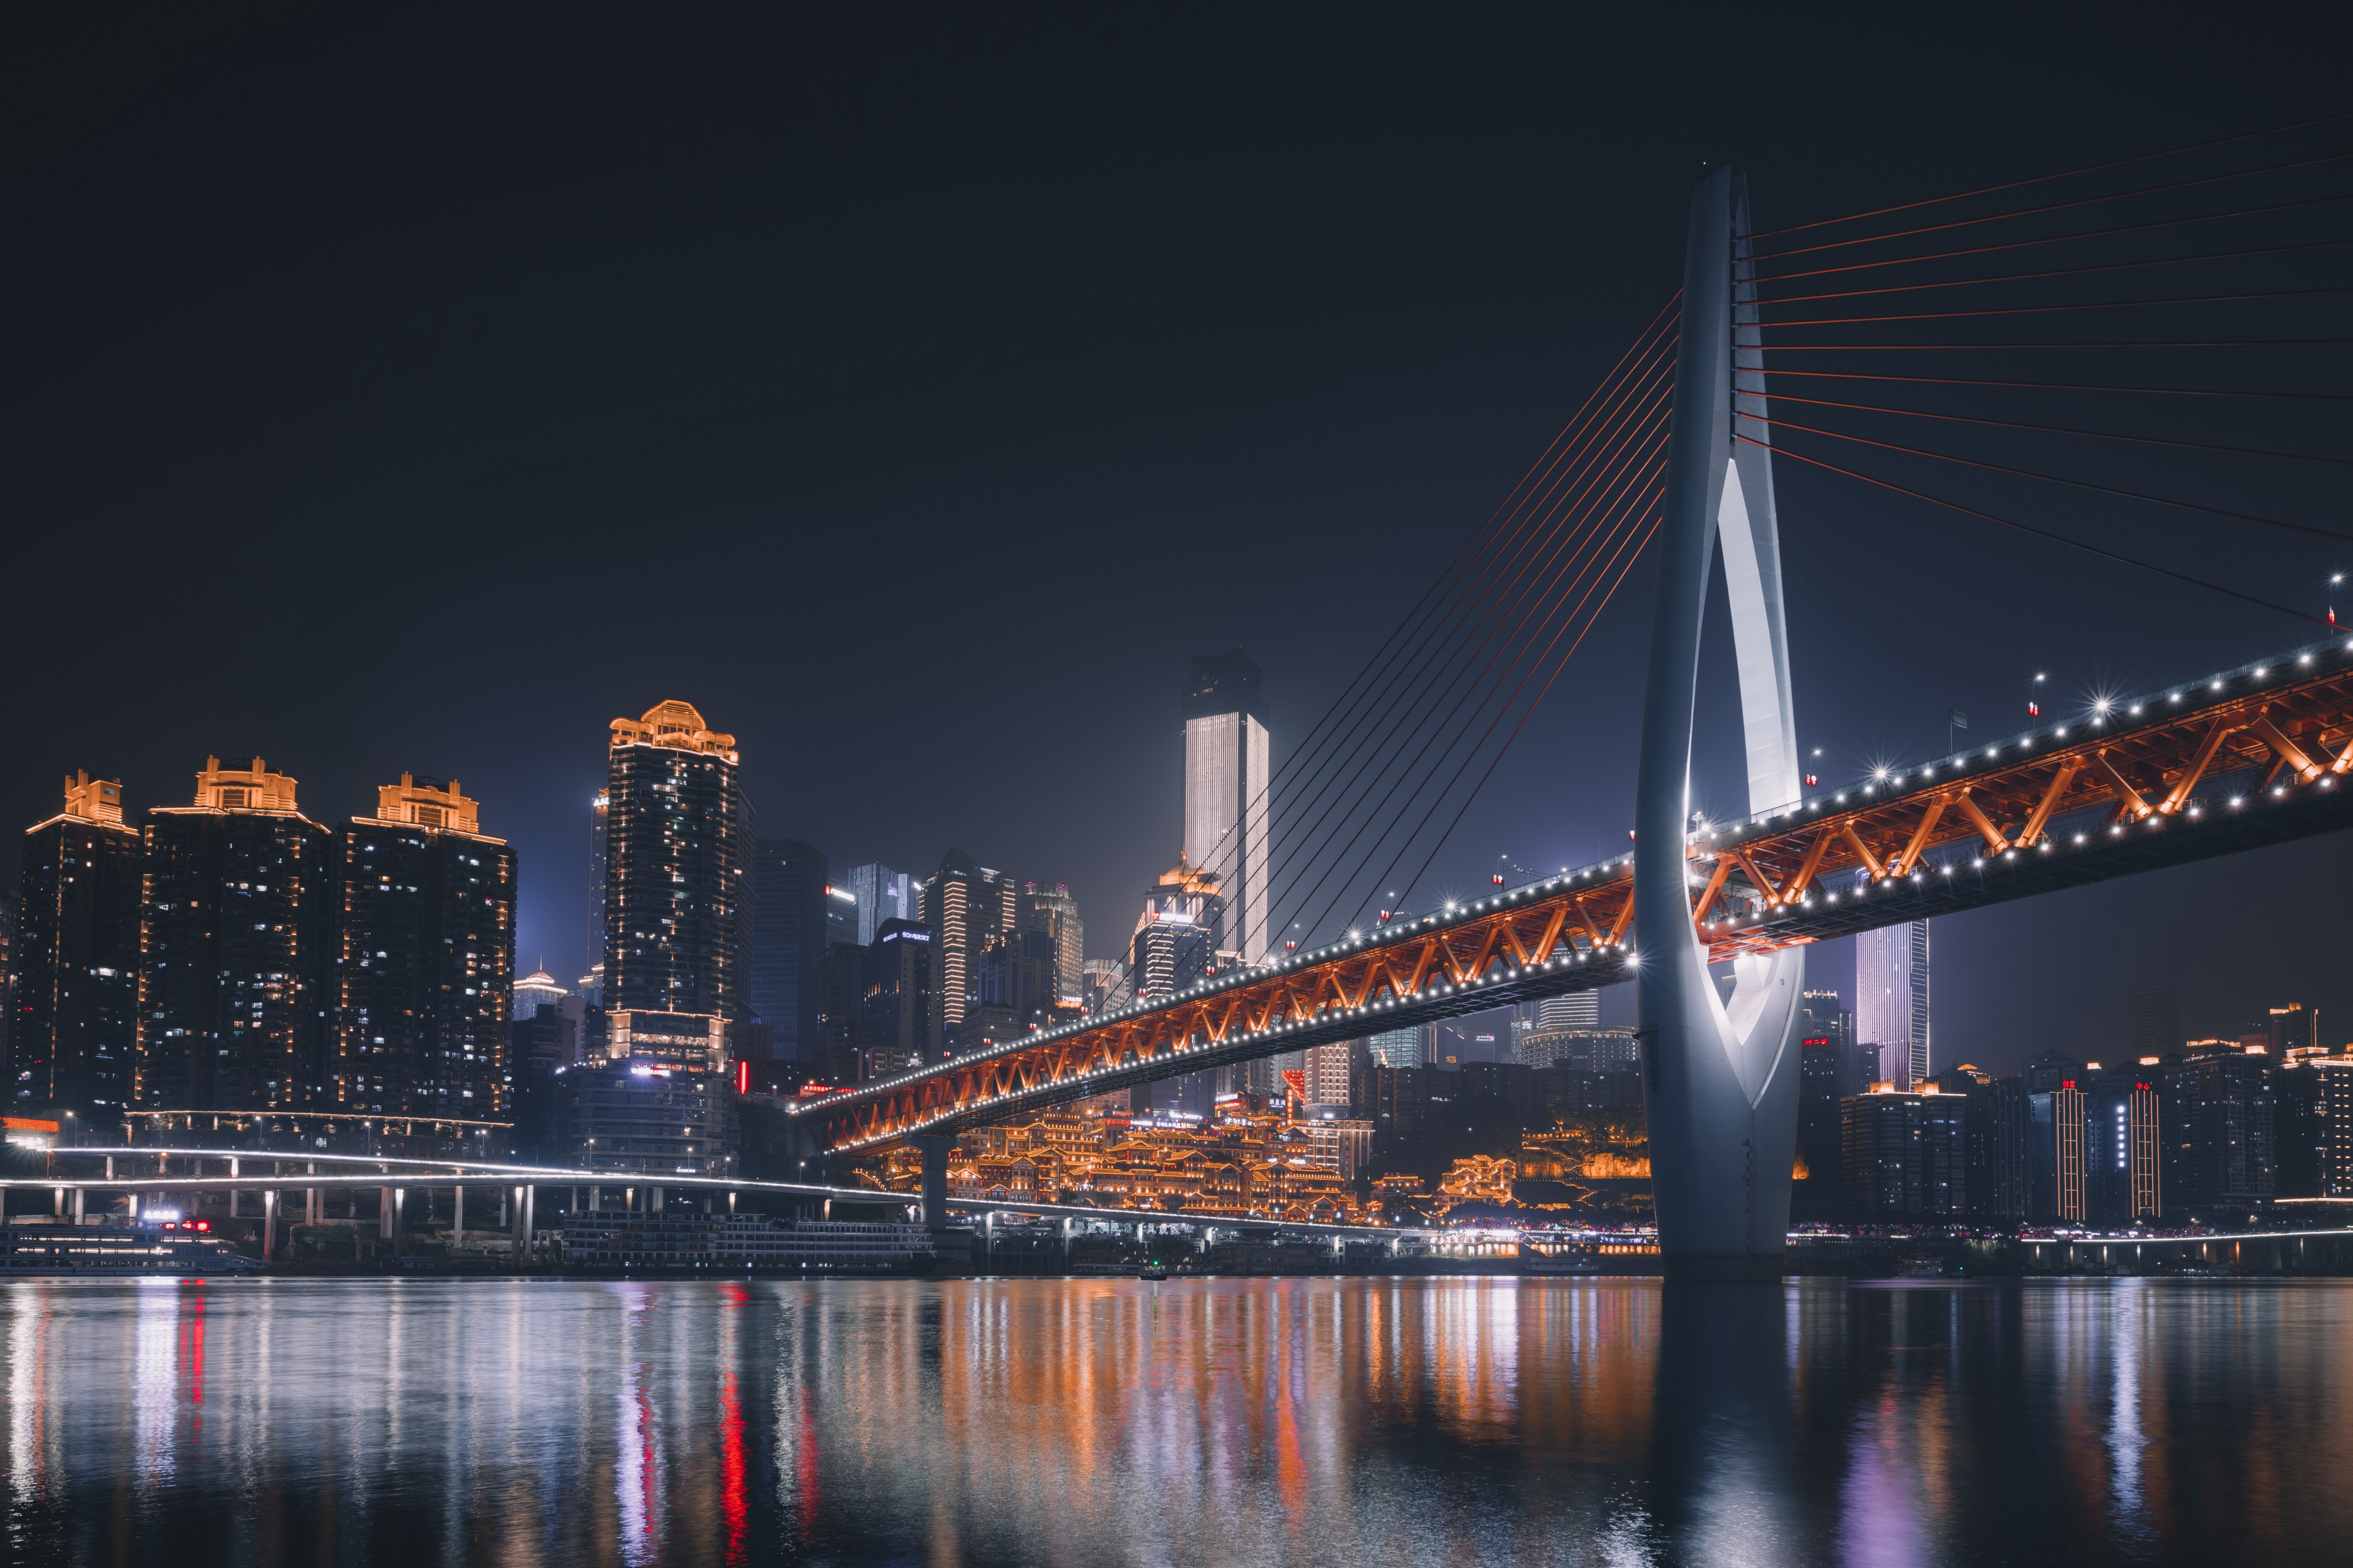 A night picture of a large, lighted bridge in China